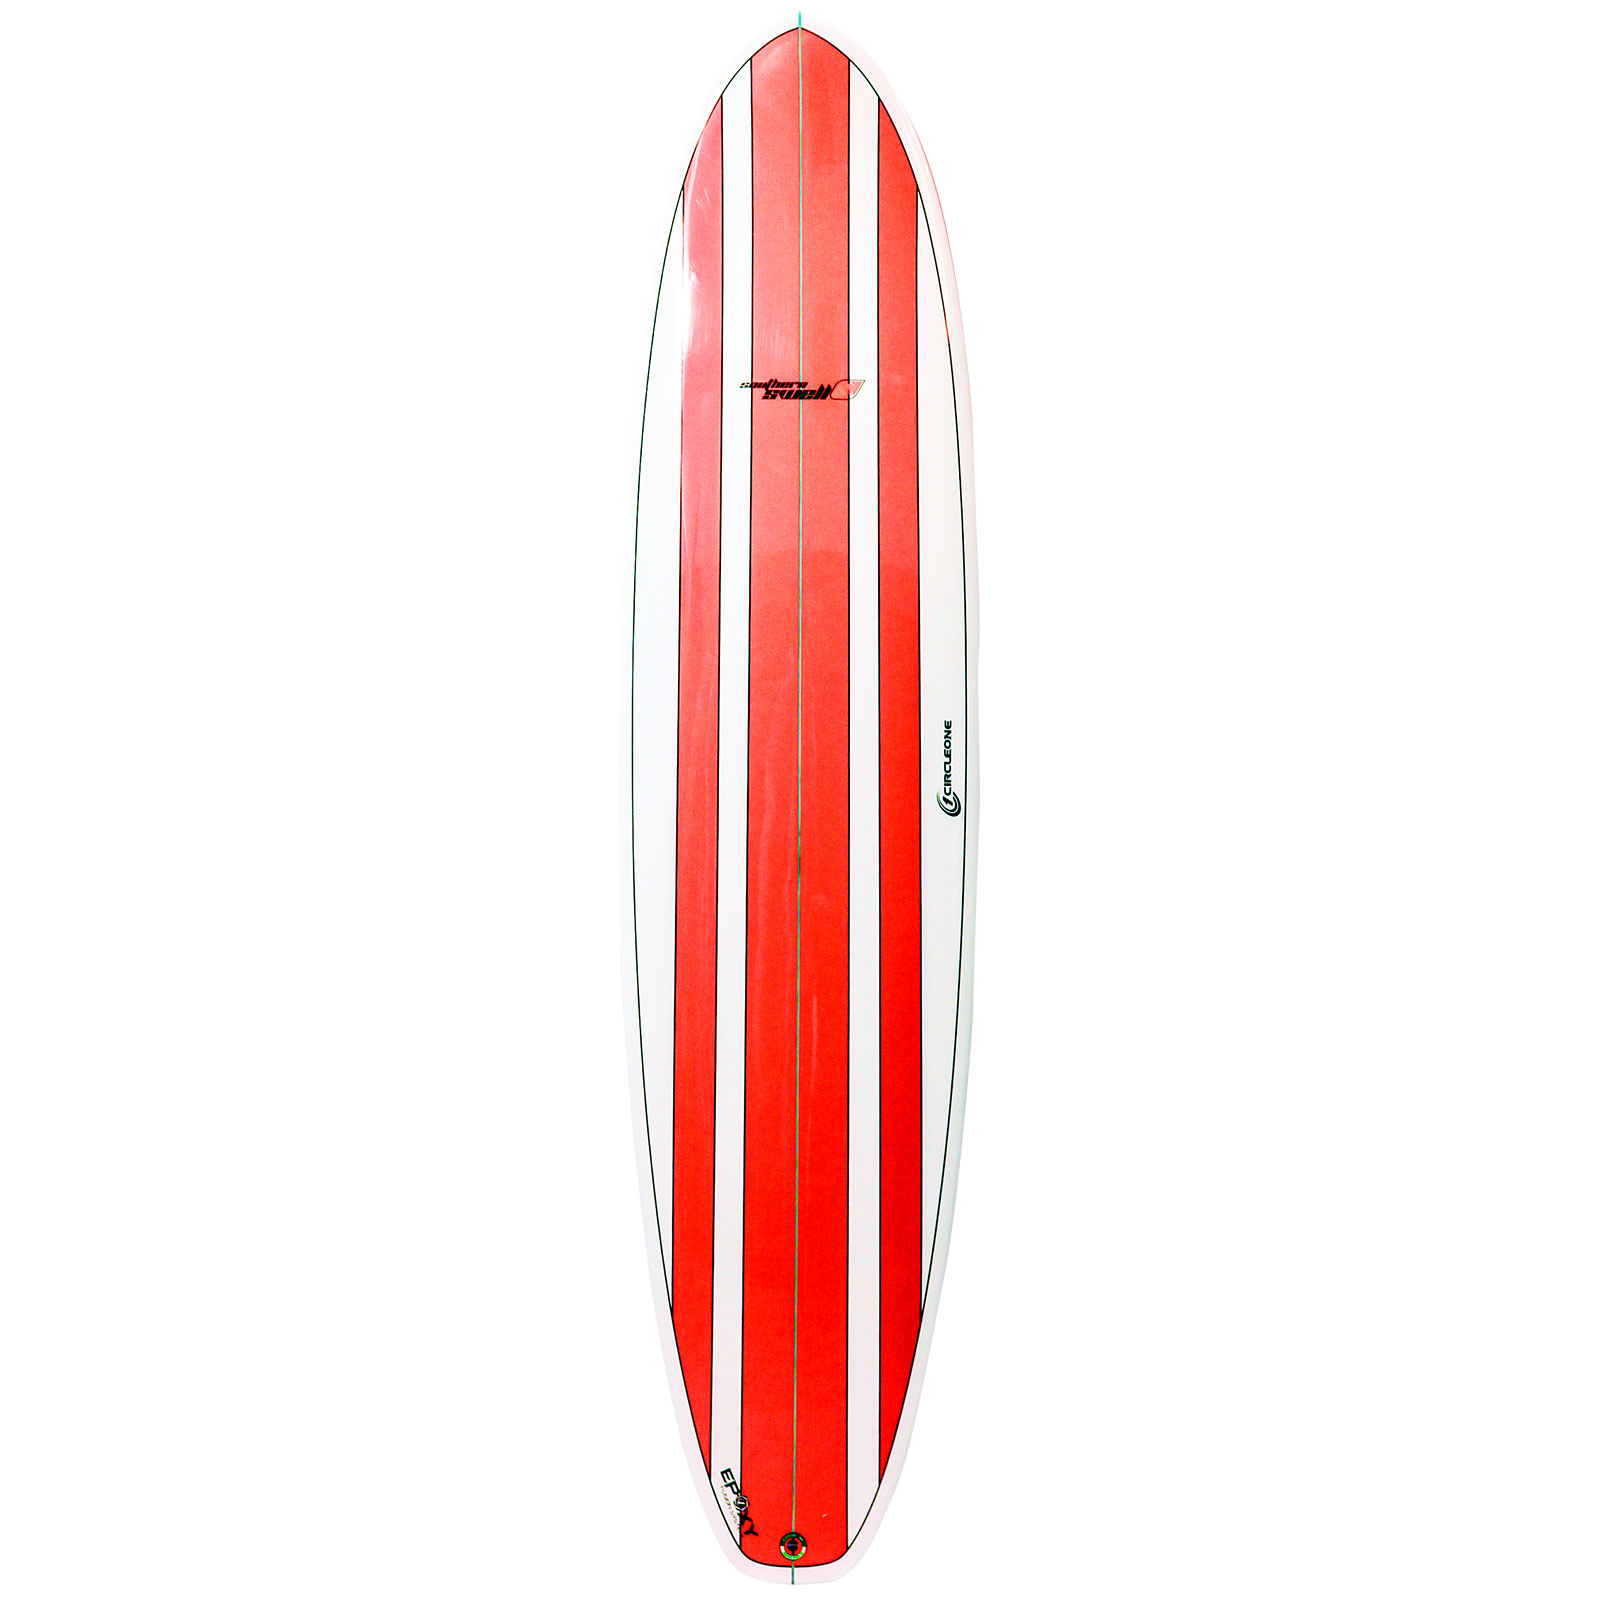 8ft Circle One Southern Swell Series Round Squash Tail Mini Mal Surfboard - Gloss Finish